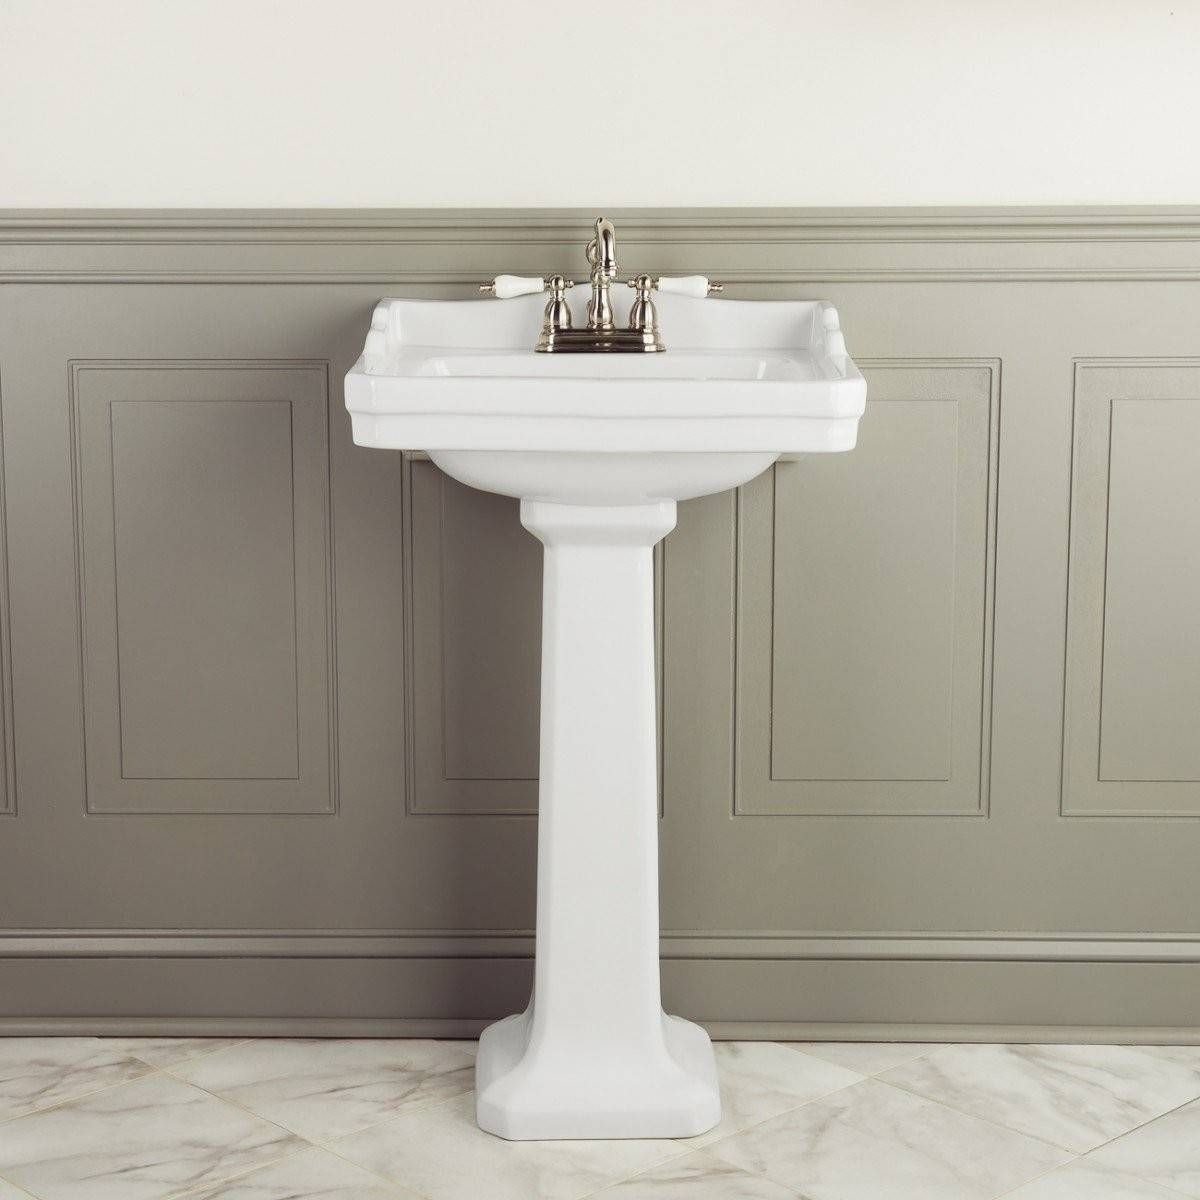 Zurich Matching Sink Toilet Set 4 Inch Faucet Drillings